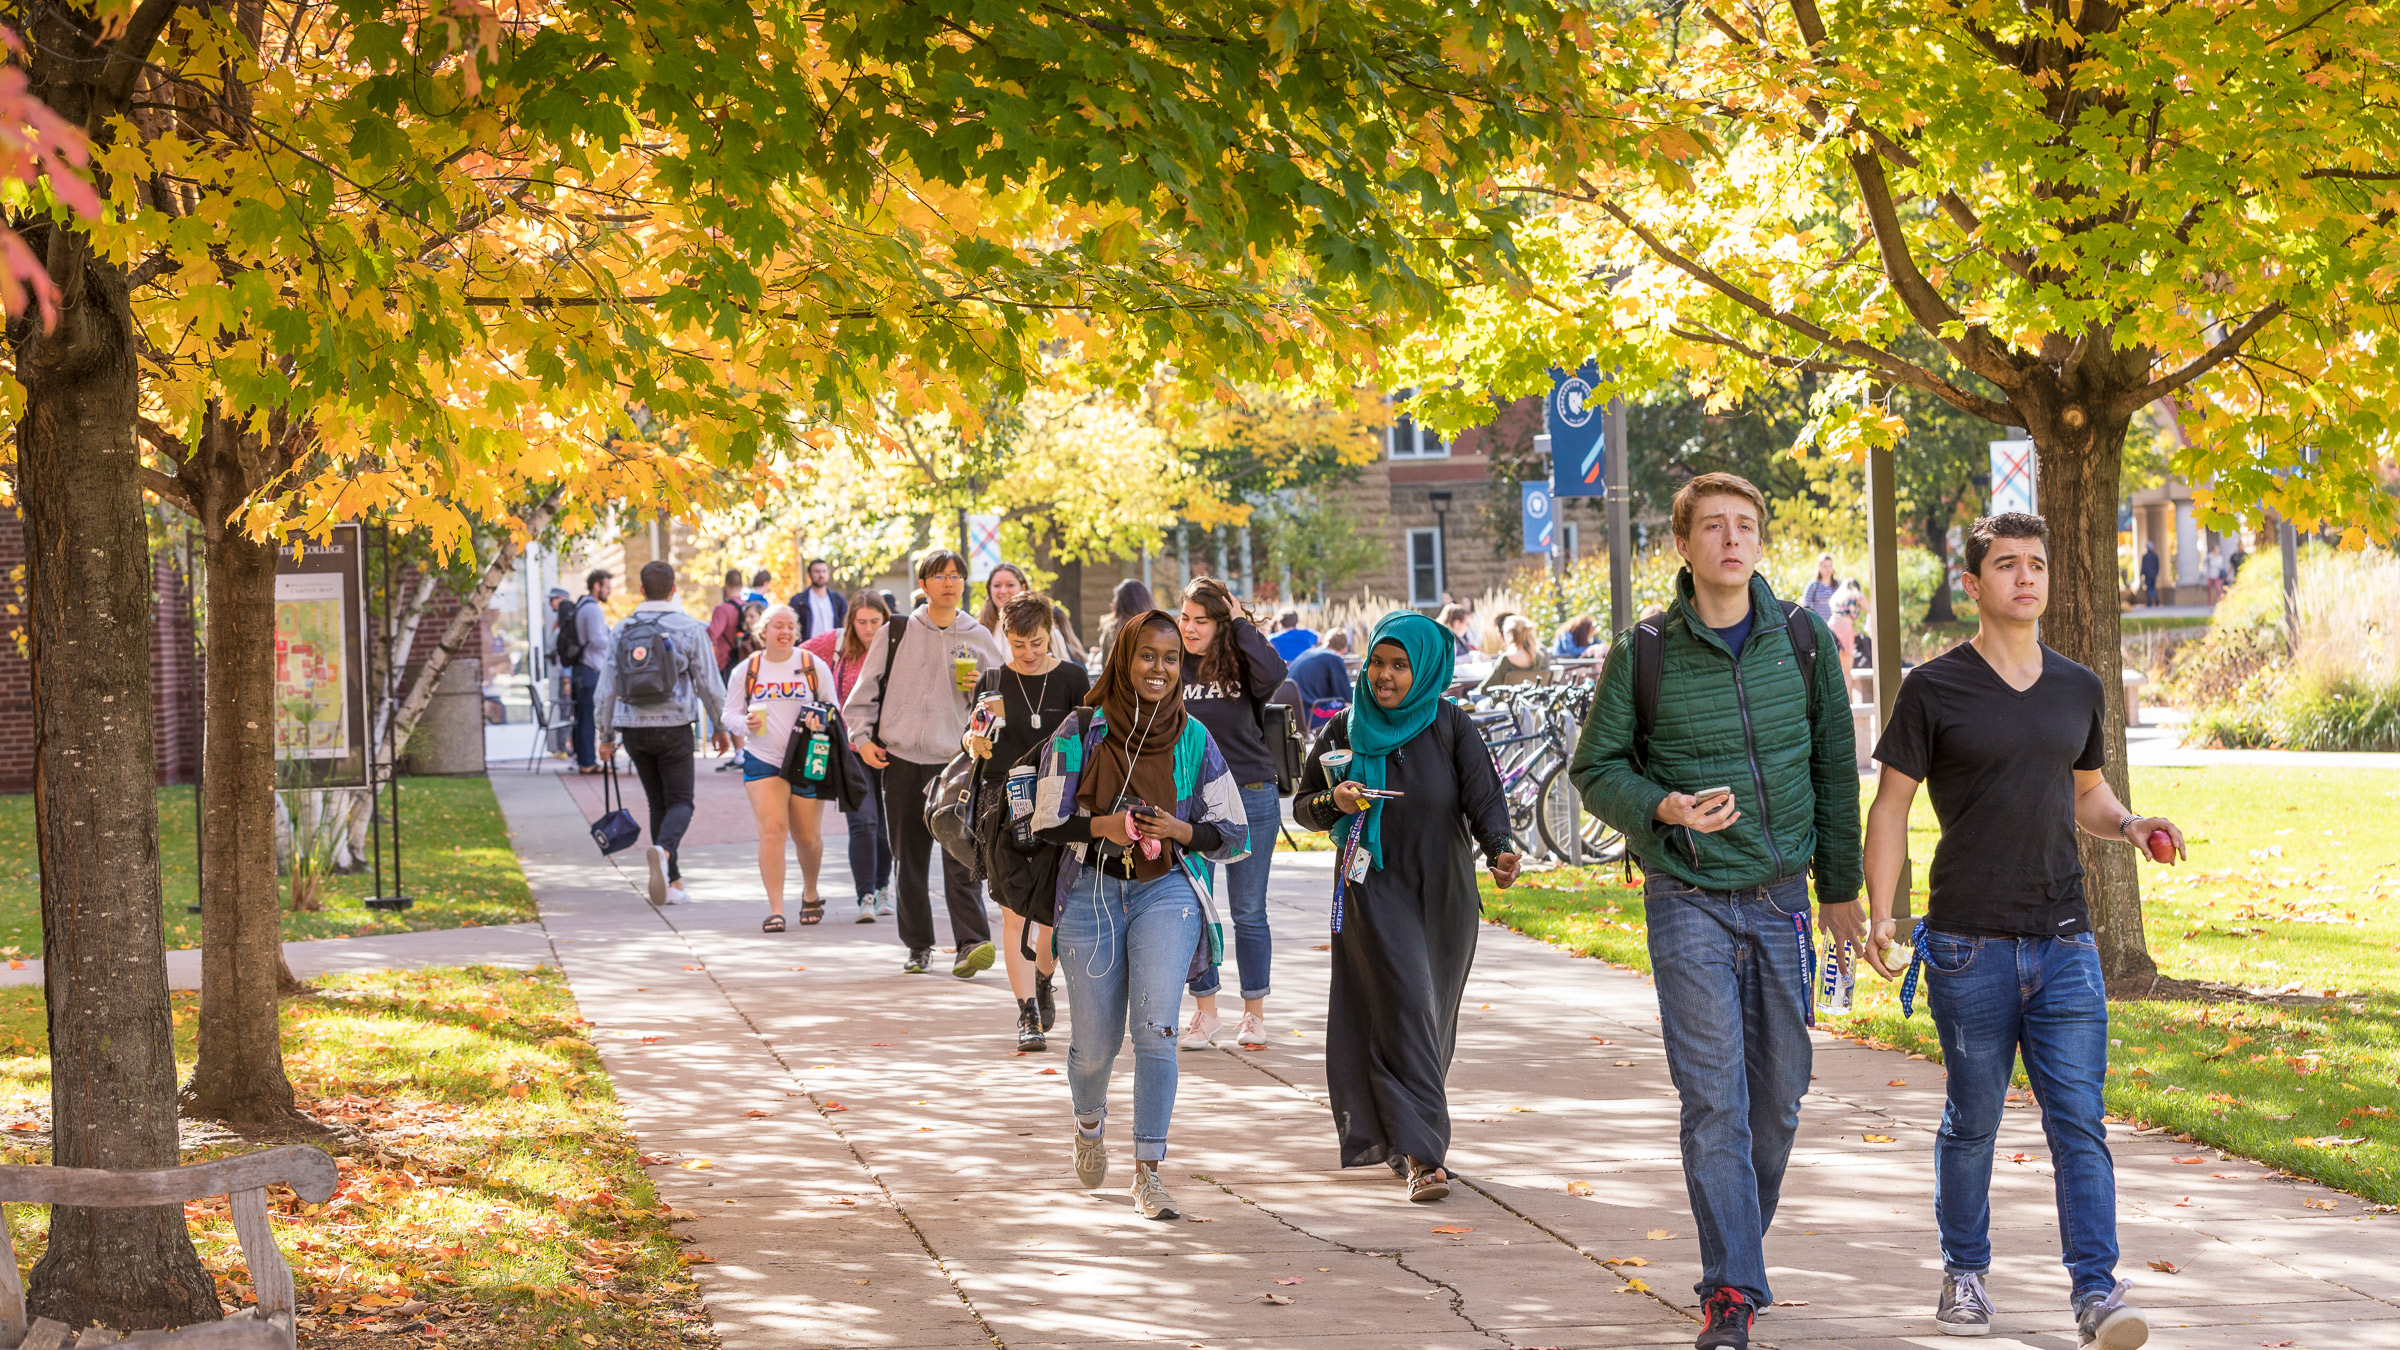 Students walking on the Macalester campus in autumn.